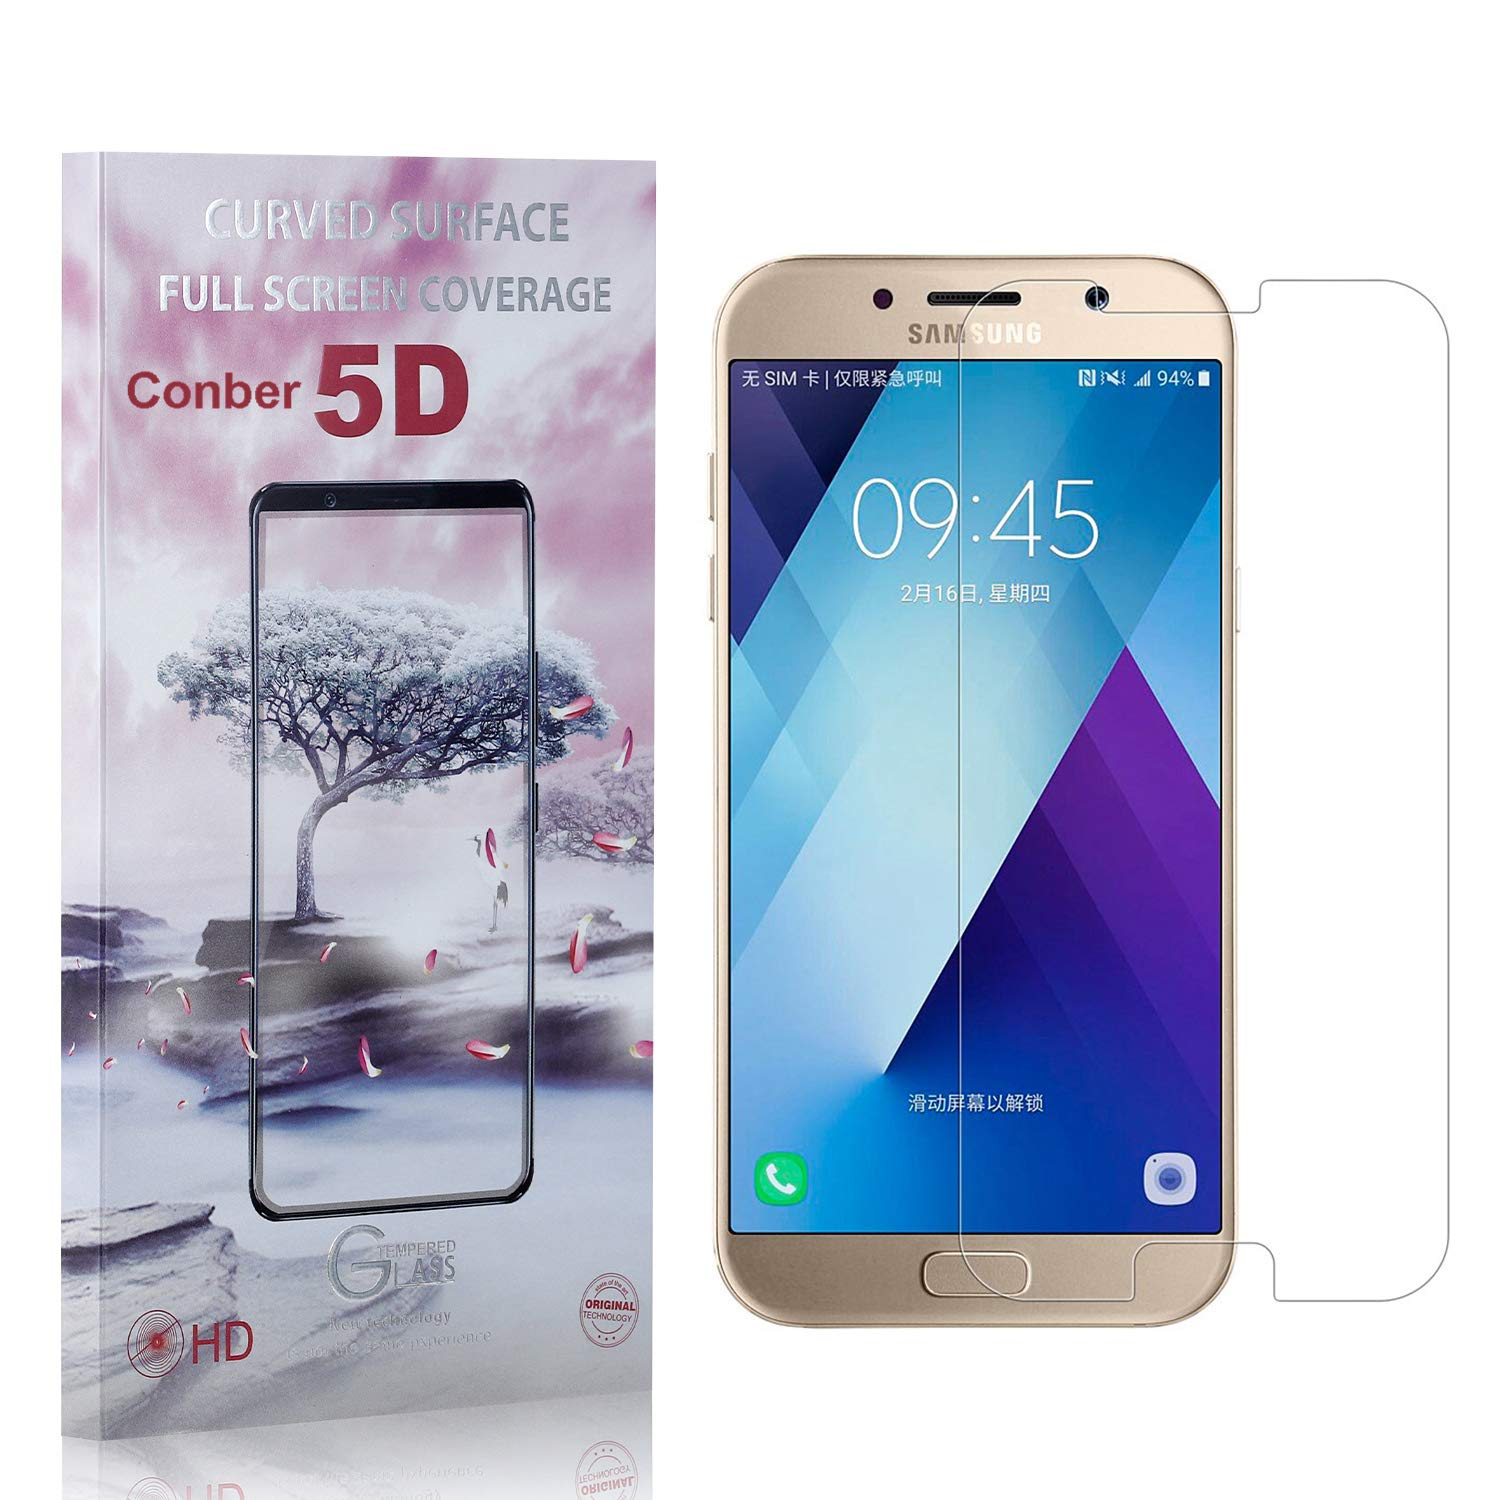 Anti-Shatter 1 Pack Case Friendly Premium Tempered Glass Screen Protector for Samsung Galaxy A5 2017 Scratch-Resistant Screen Protector for Samsung Galaxy A5 2017, Conber